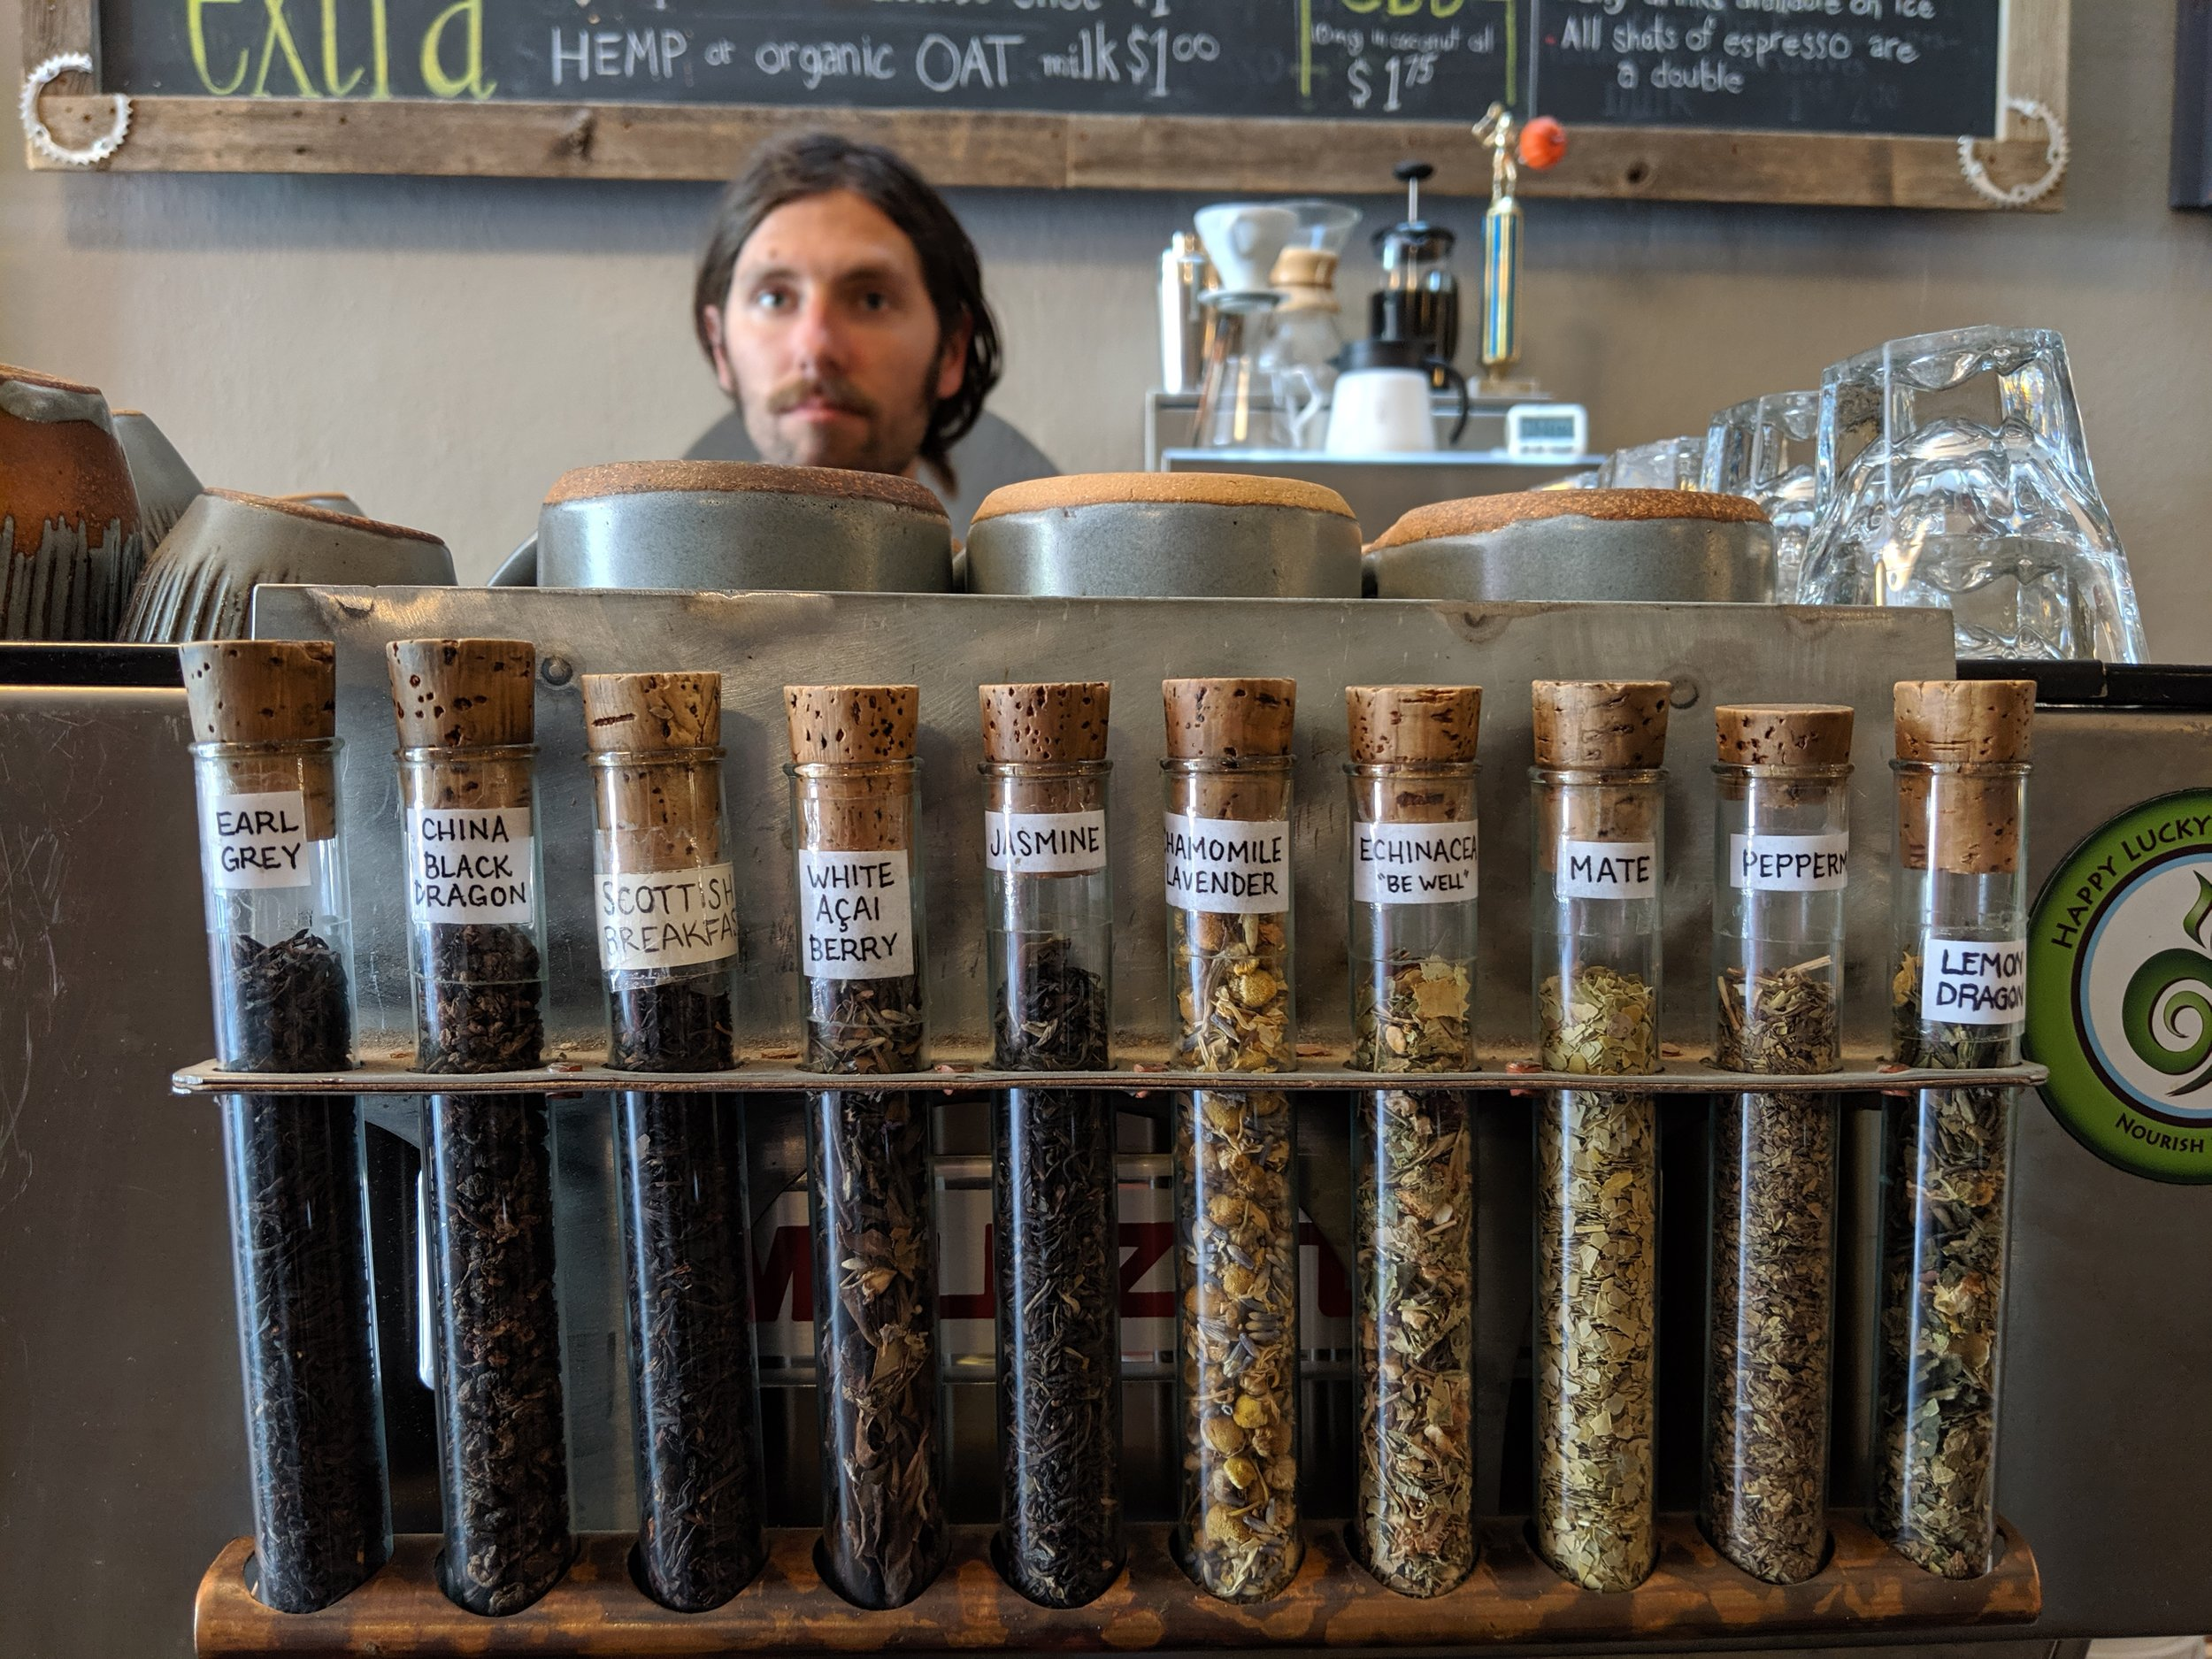 Checking out the teas in The Bean Cycle in Old Town Fort Collins, Colorado.